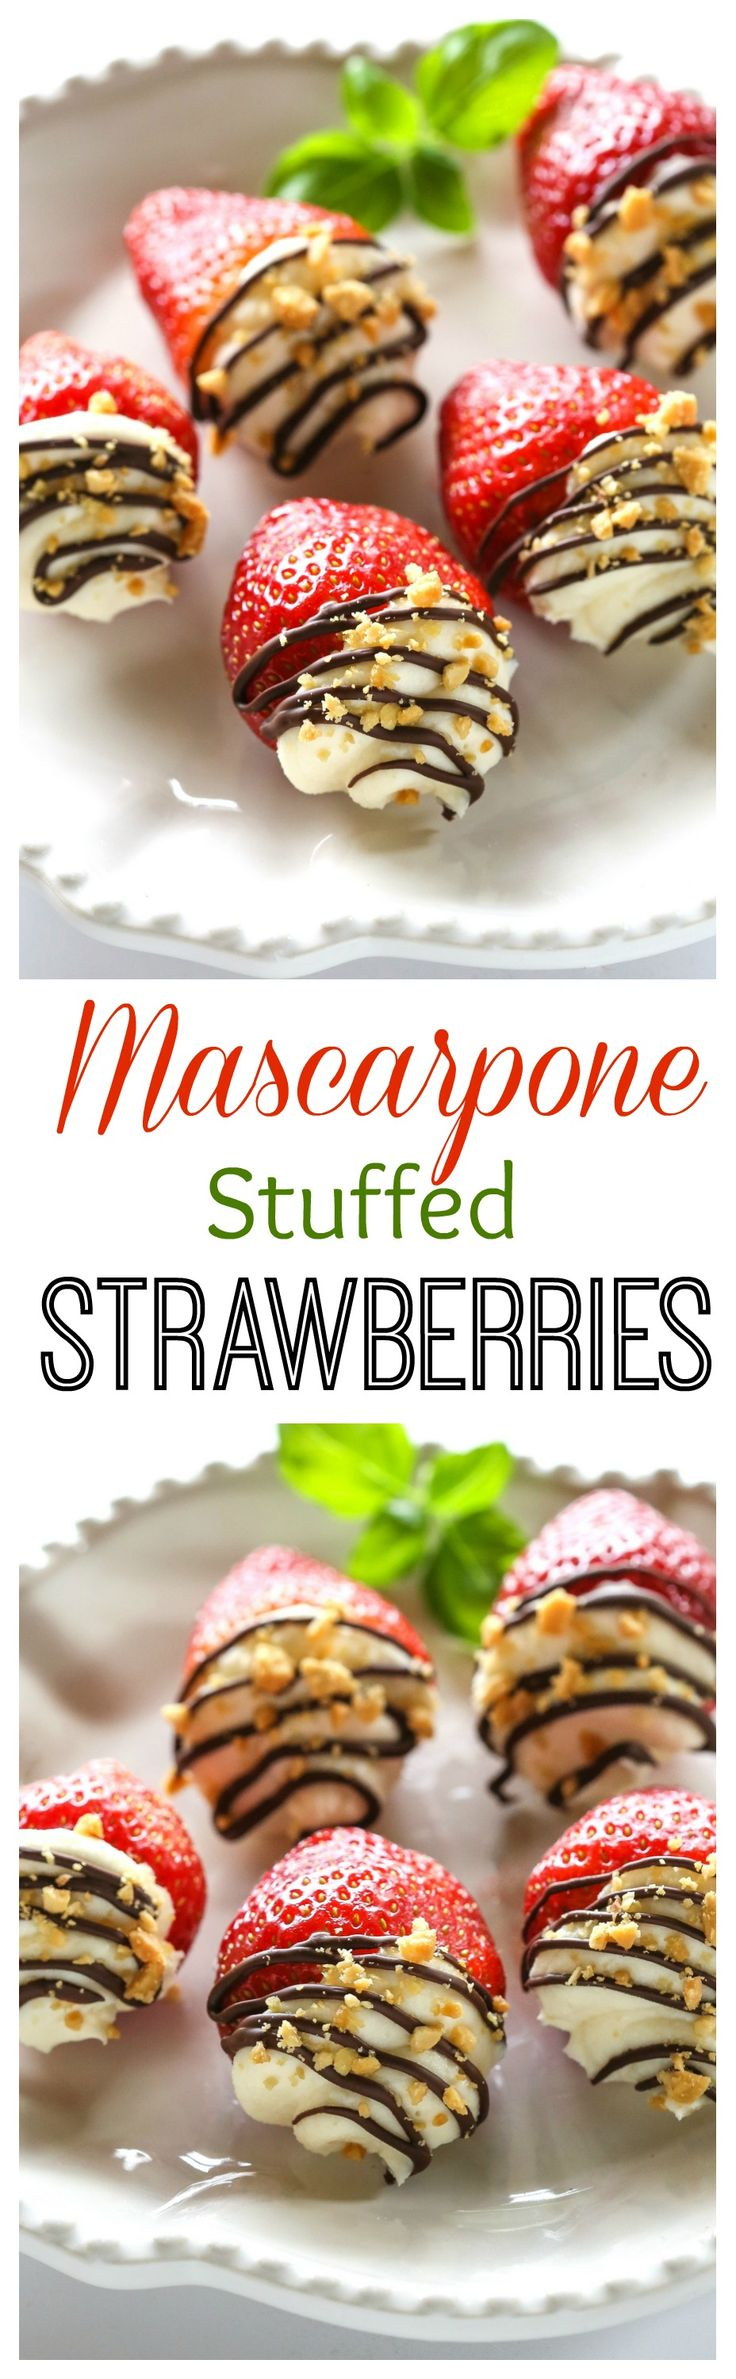 Mascarpone Stuffed Strawberrries. Sweet and silky mascarpone filled strawberries drizzled with chocolate and nuts. 59 calories for each! the-girl-who-ate-everything.com